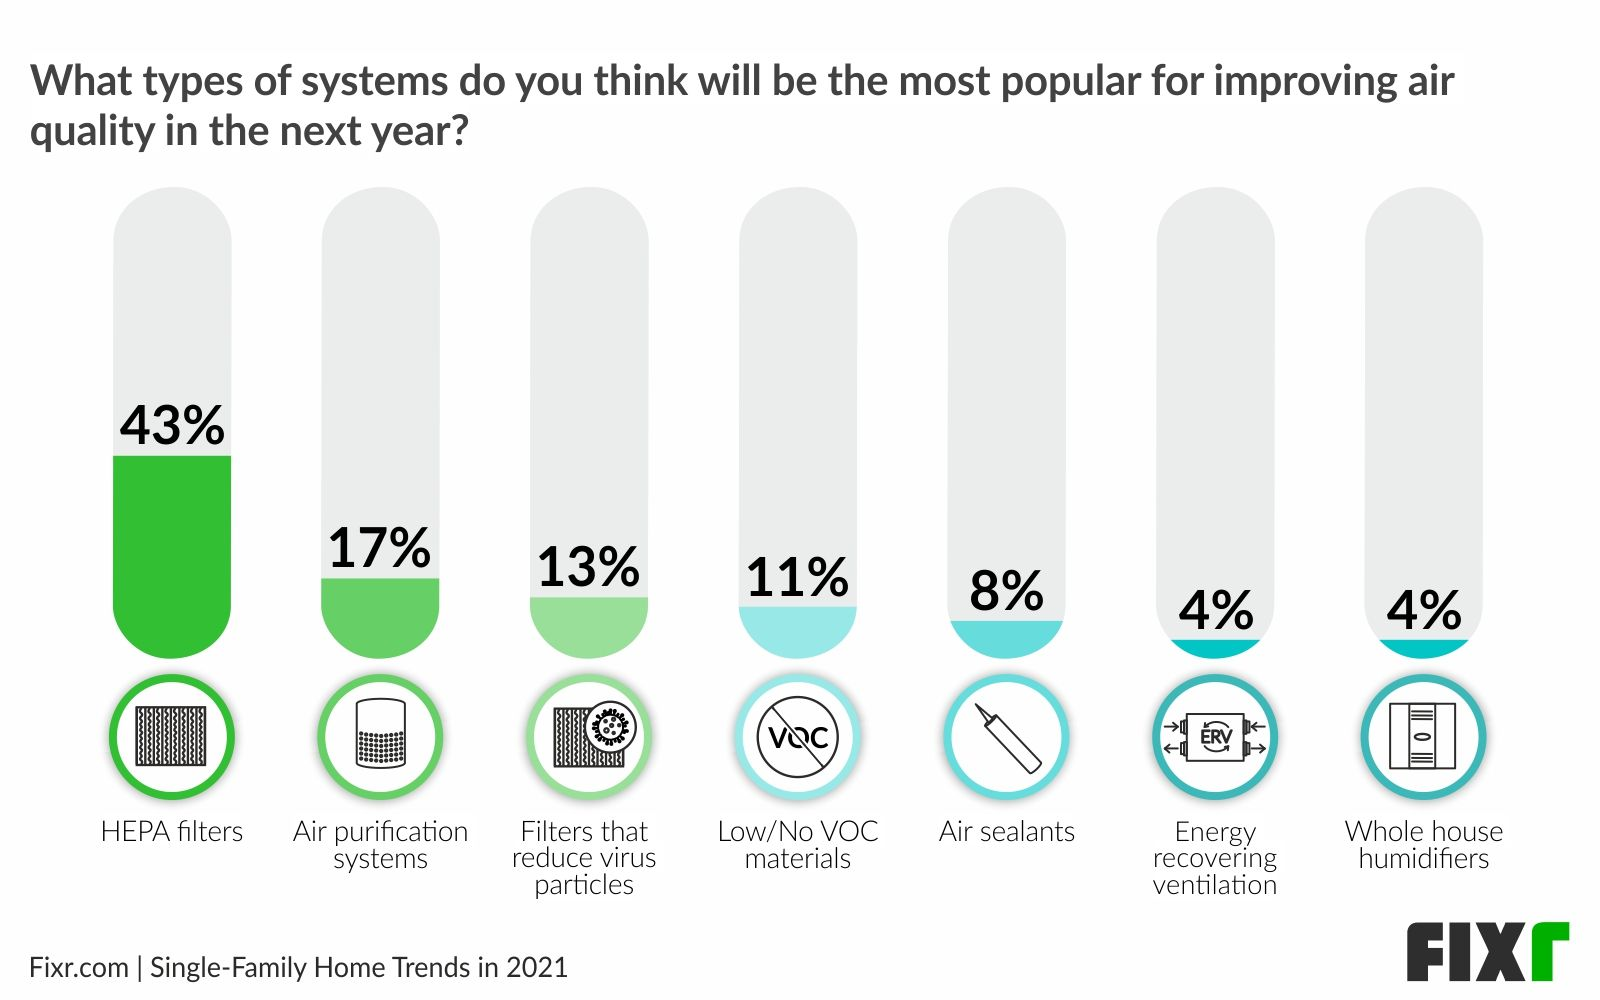 Systems for building a healthy home